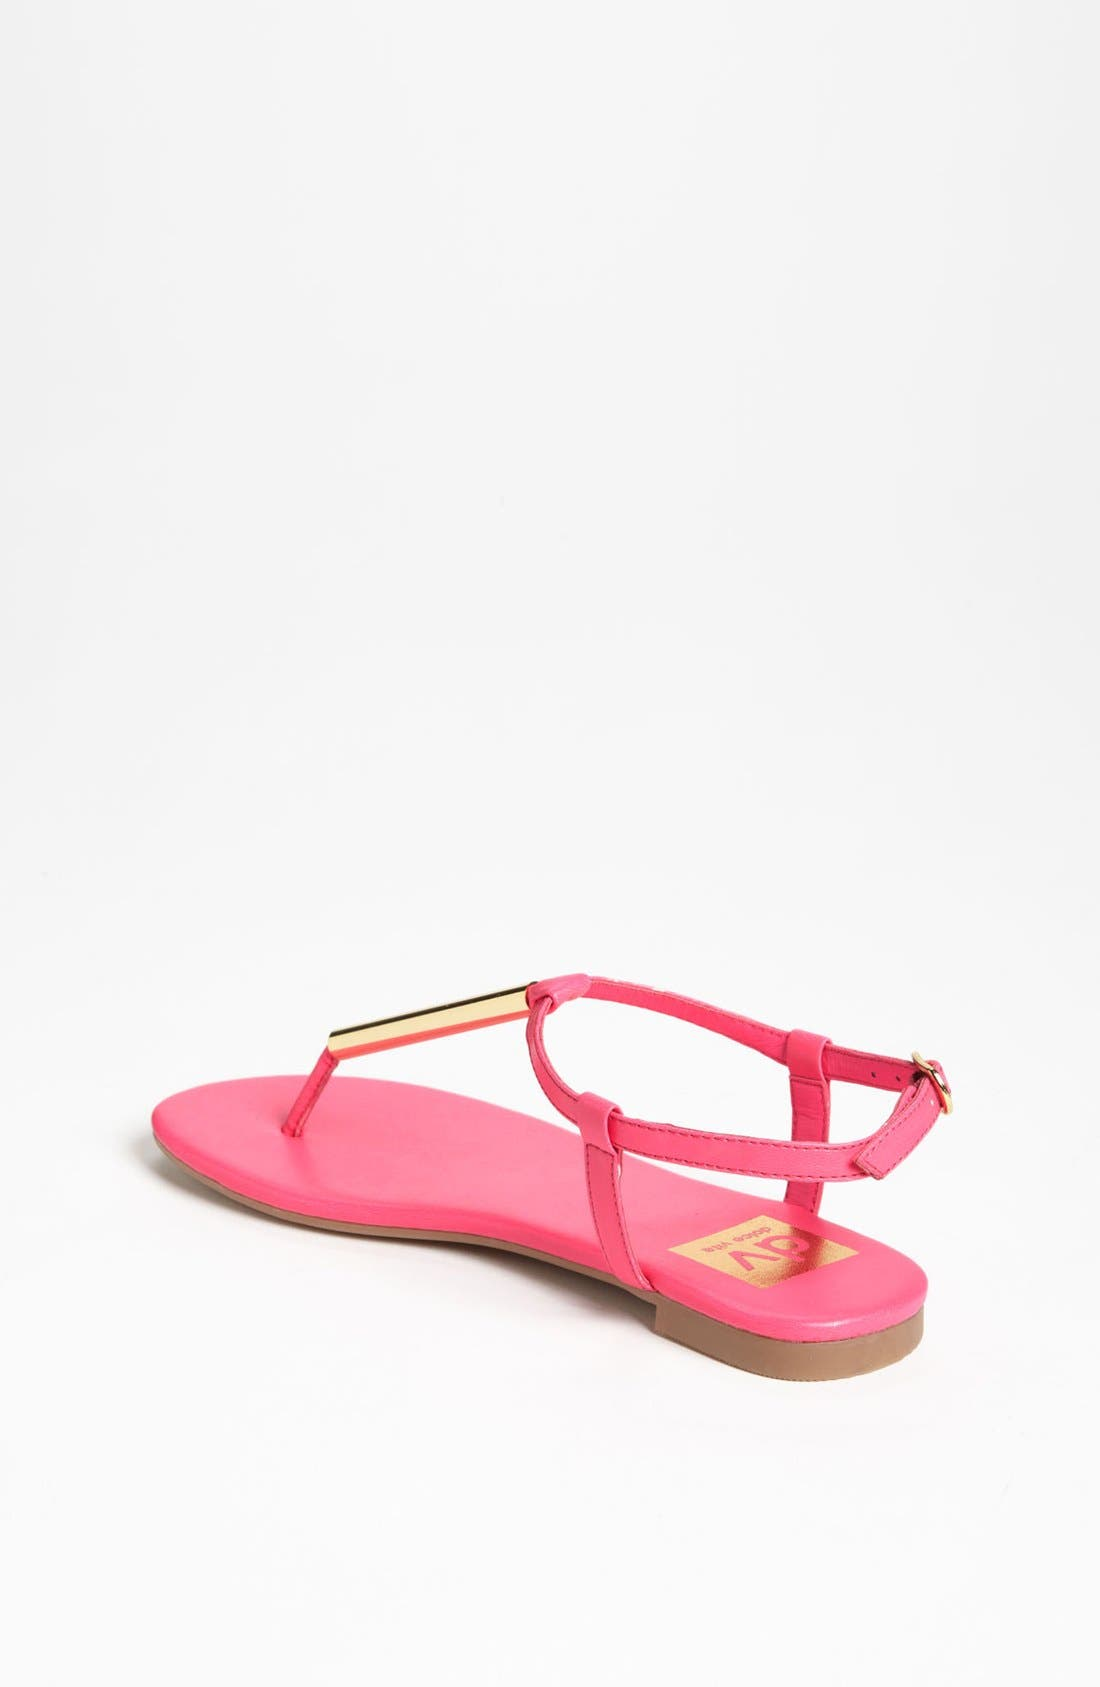 Alternate Image 2  - DV by Dolce Vita 'Amiga' Sandal (Toddler, Little Kid & Big Kid)